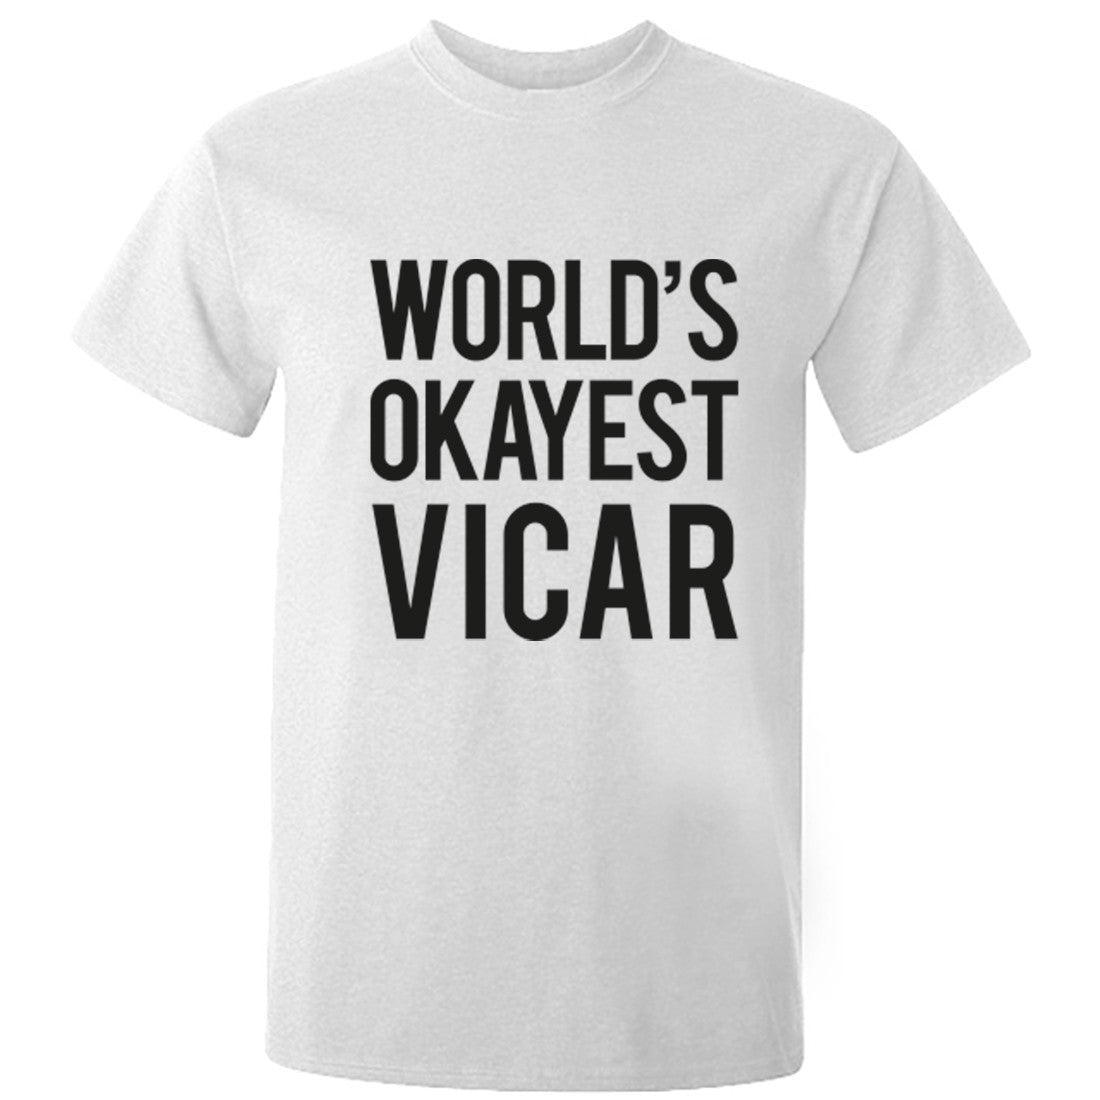 Worlds Okayest Vicar Unisex Fit T-Shirt K0509 - Illustrated Identity Ltd.